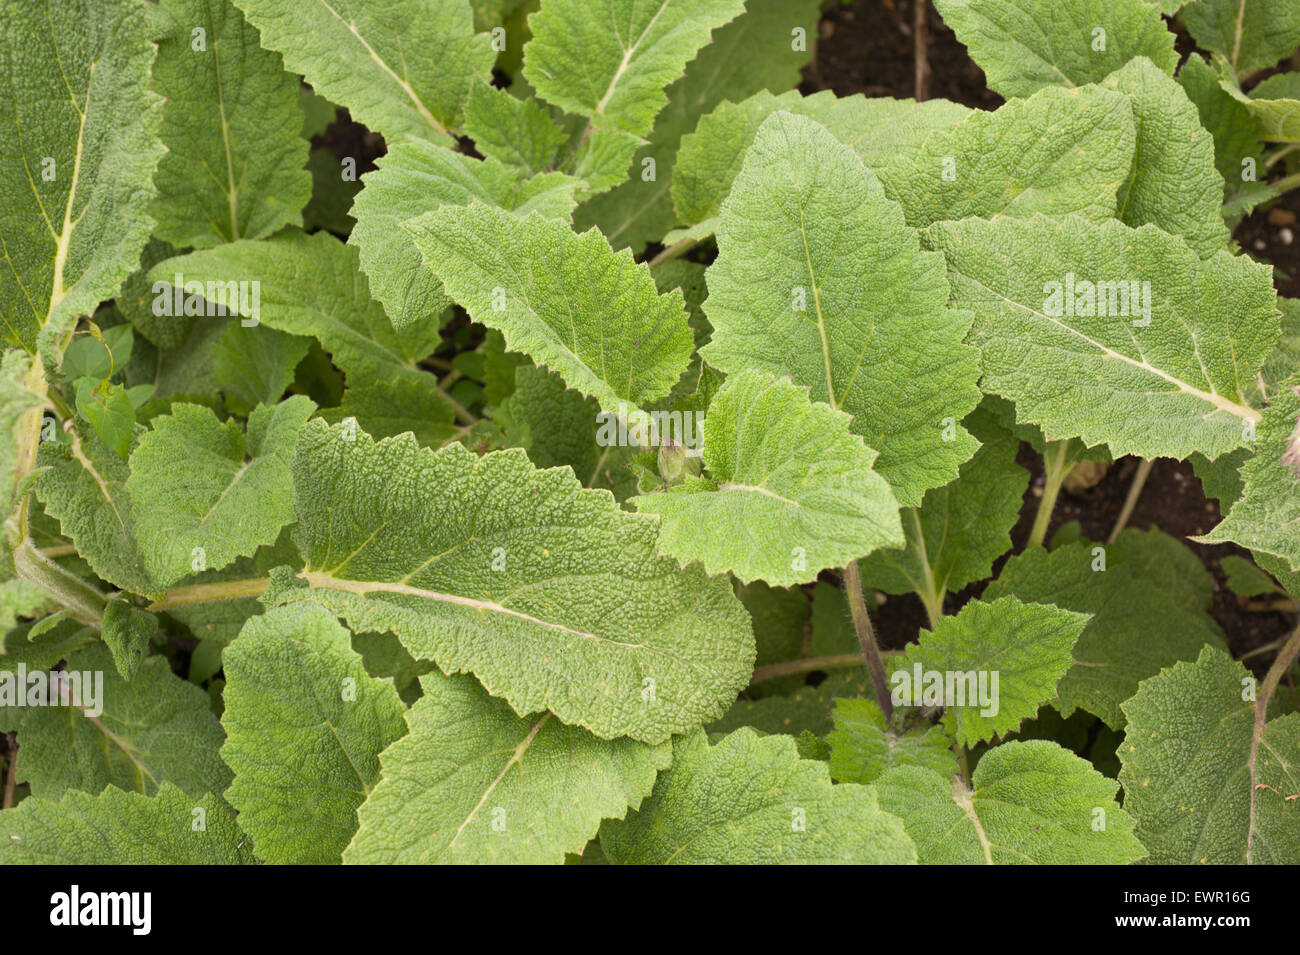 [Great Britain] closeups [colour images] herbs outsides plants daylight detail [Northern Europe] [close-ups] foods - Stock Image